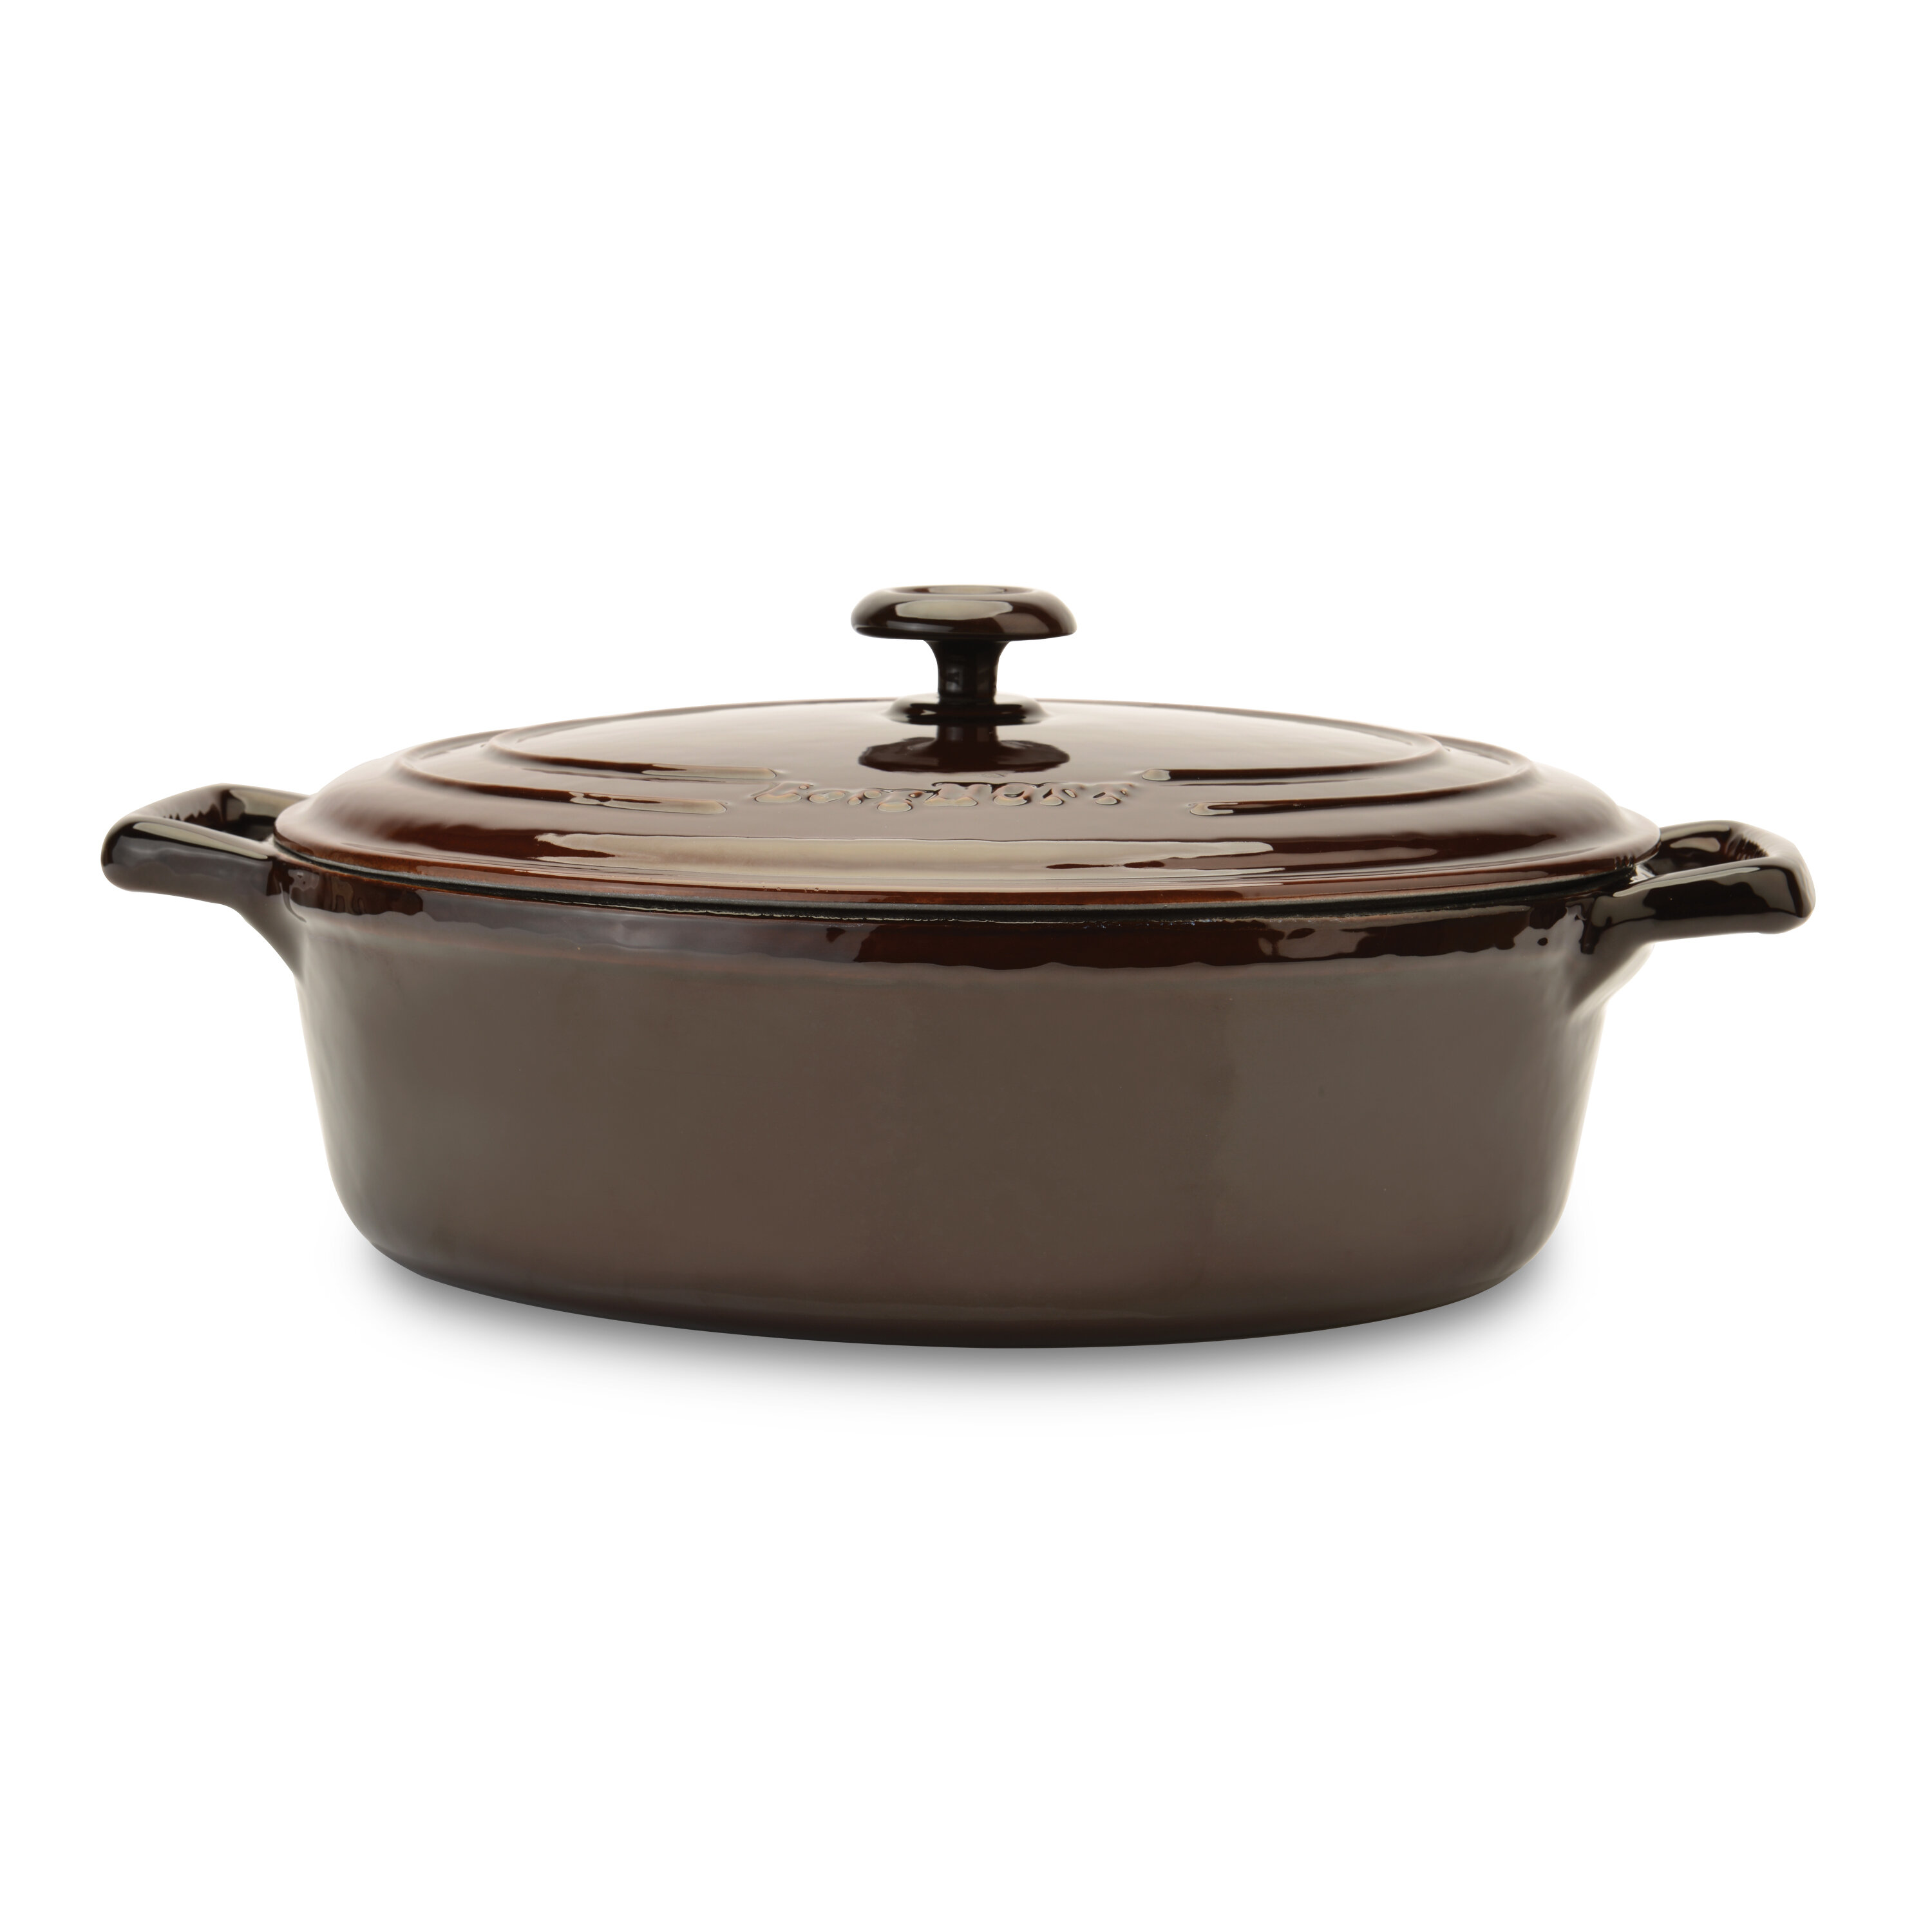 Berghoff International Neo 4 8 Qt Cast Iron Oval Covered Casserole With Lid Wayfair